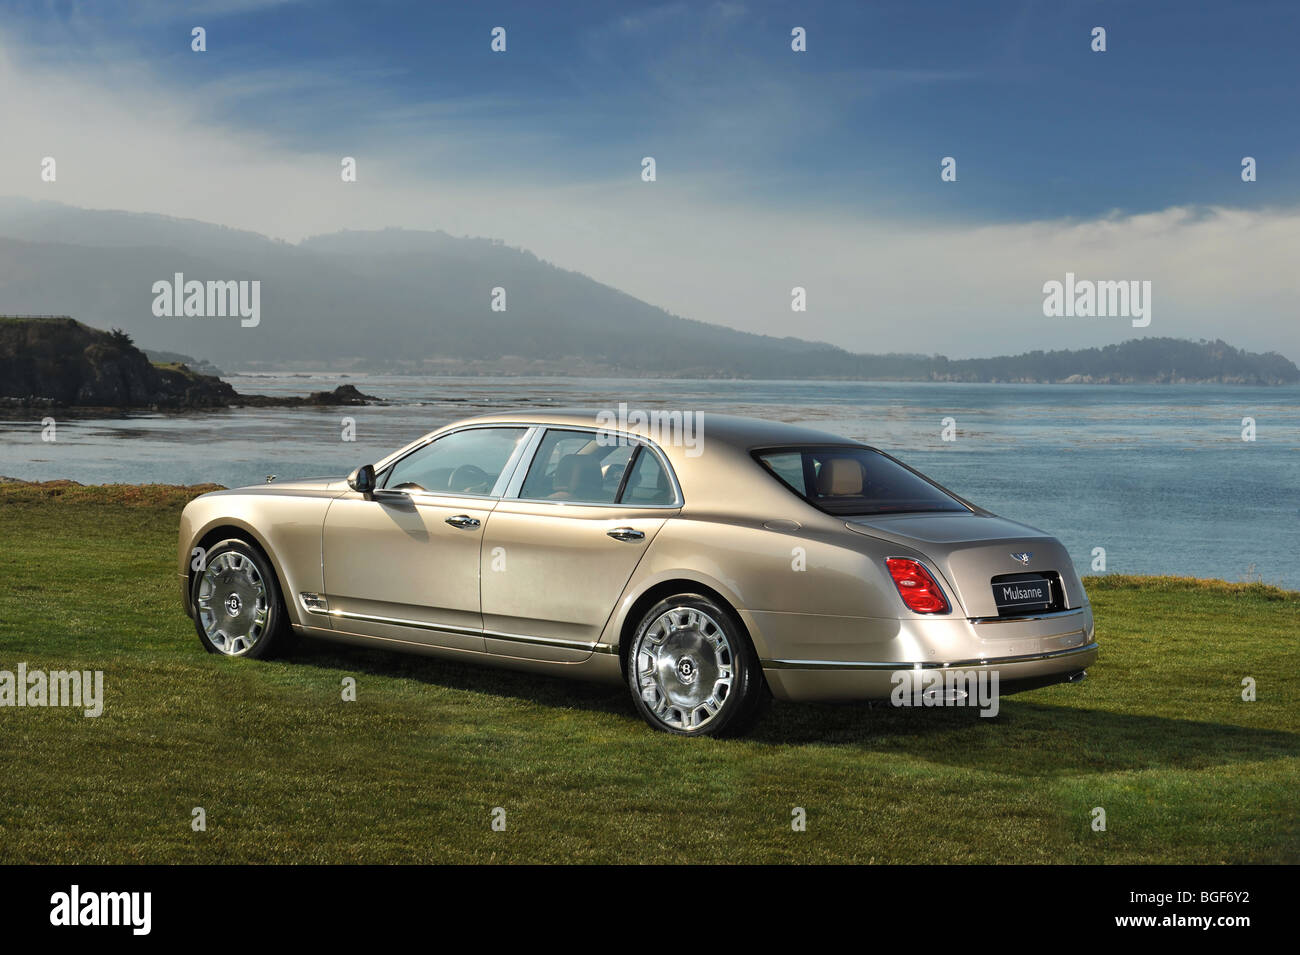 2009 Bentley Mulsanne bei Pebble Beach Concour de elegance Stockbild